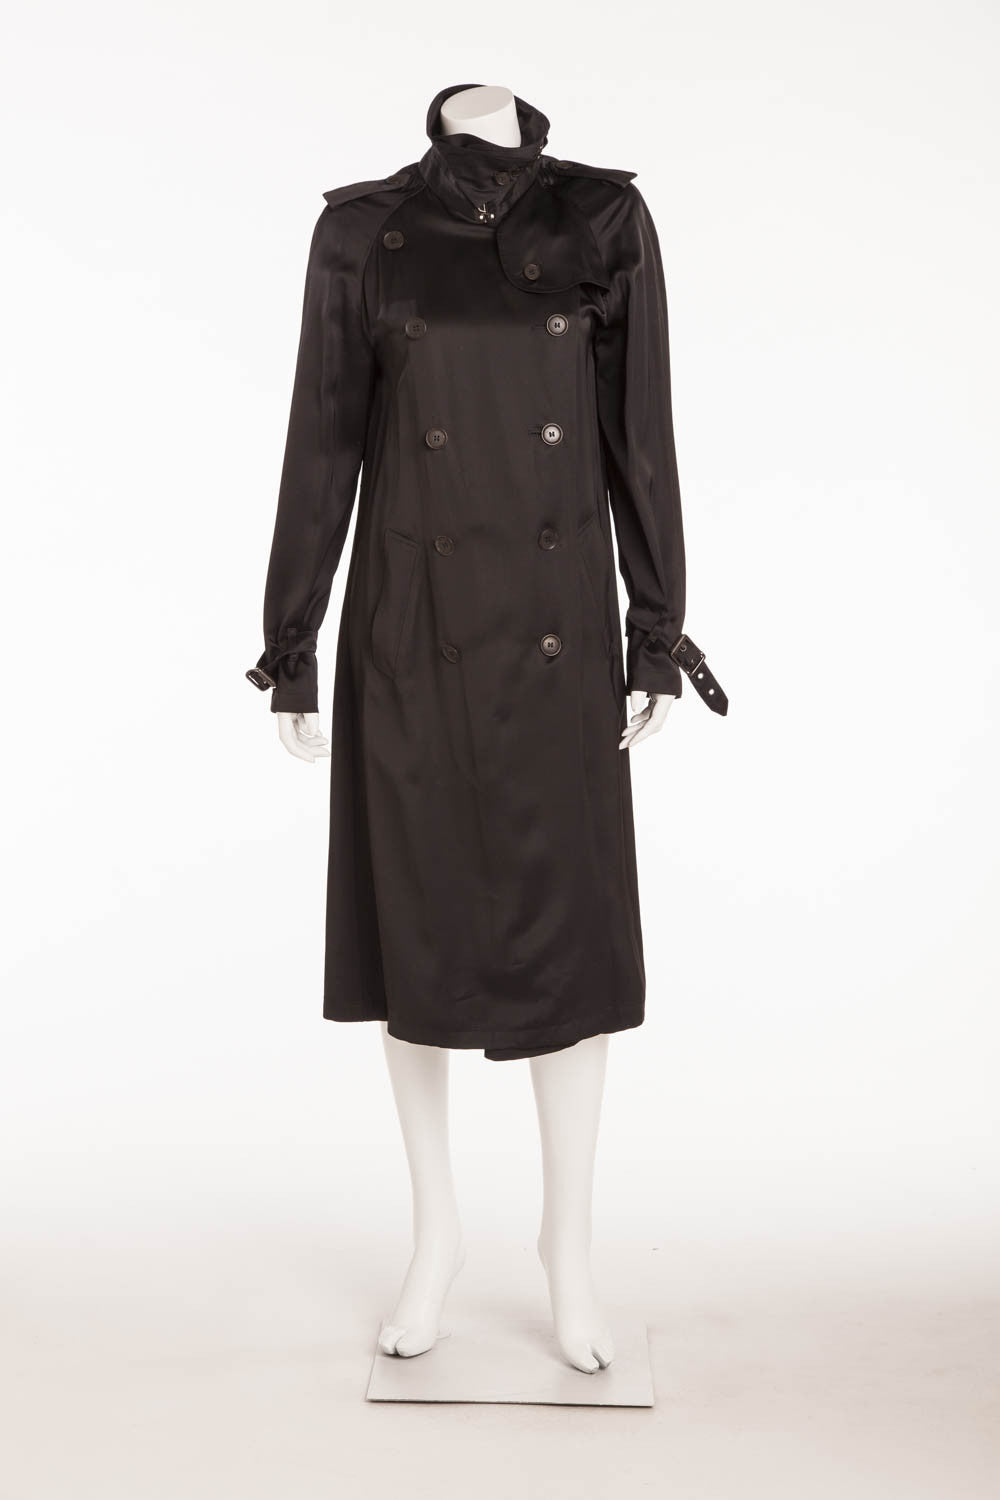 Burberry - Silk Black Button Up Trench Coat with Belt - FR 42